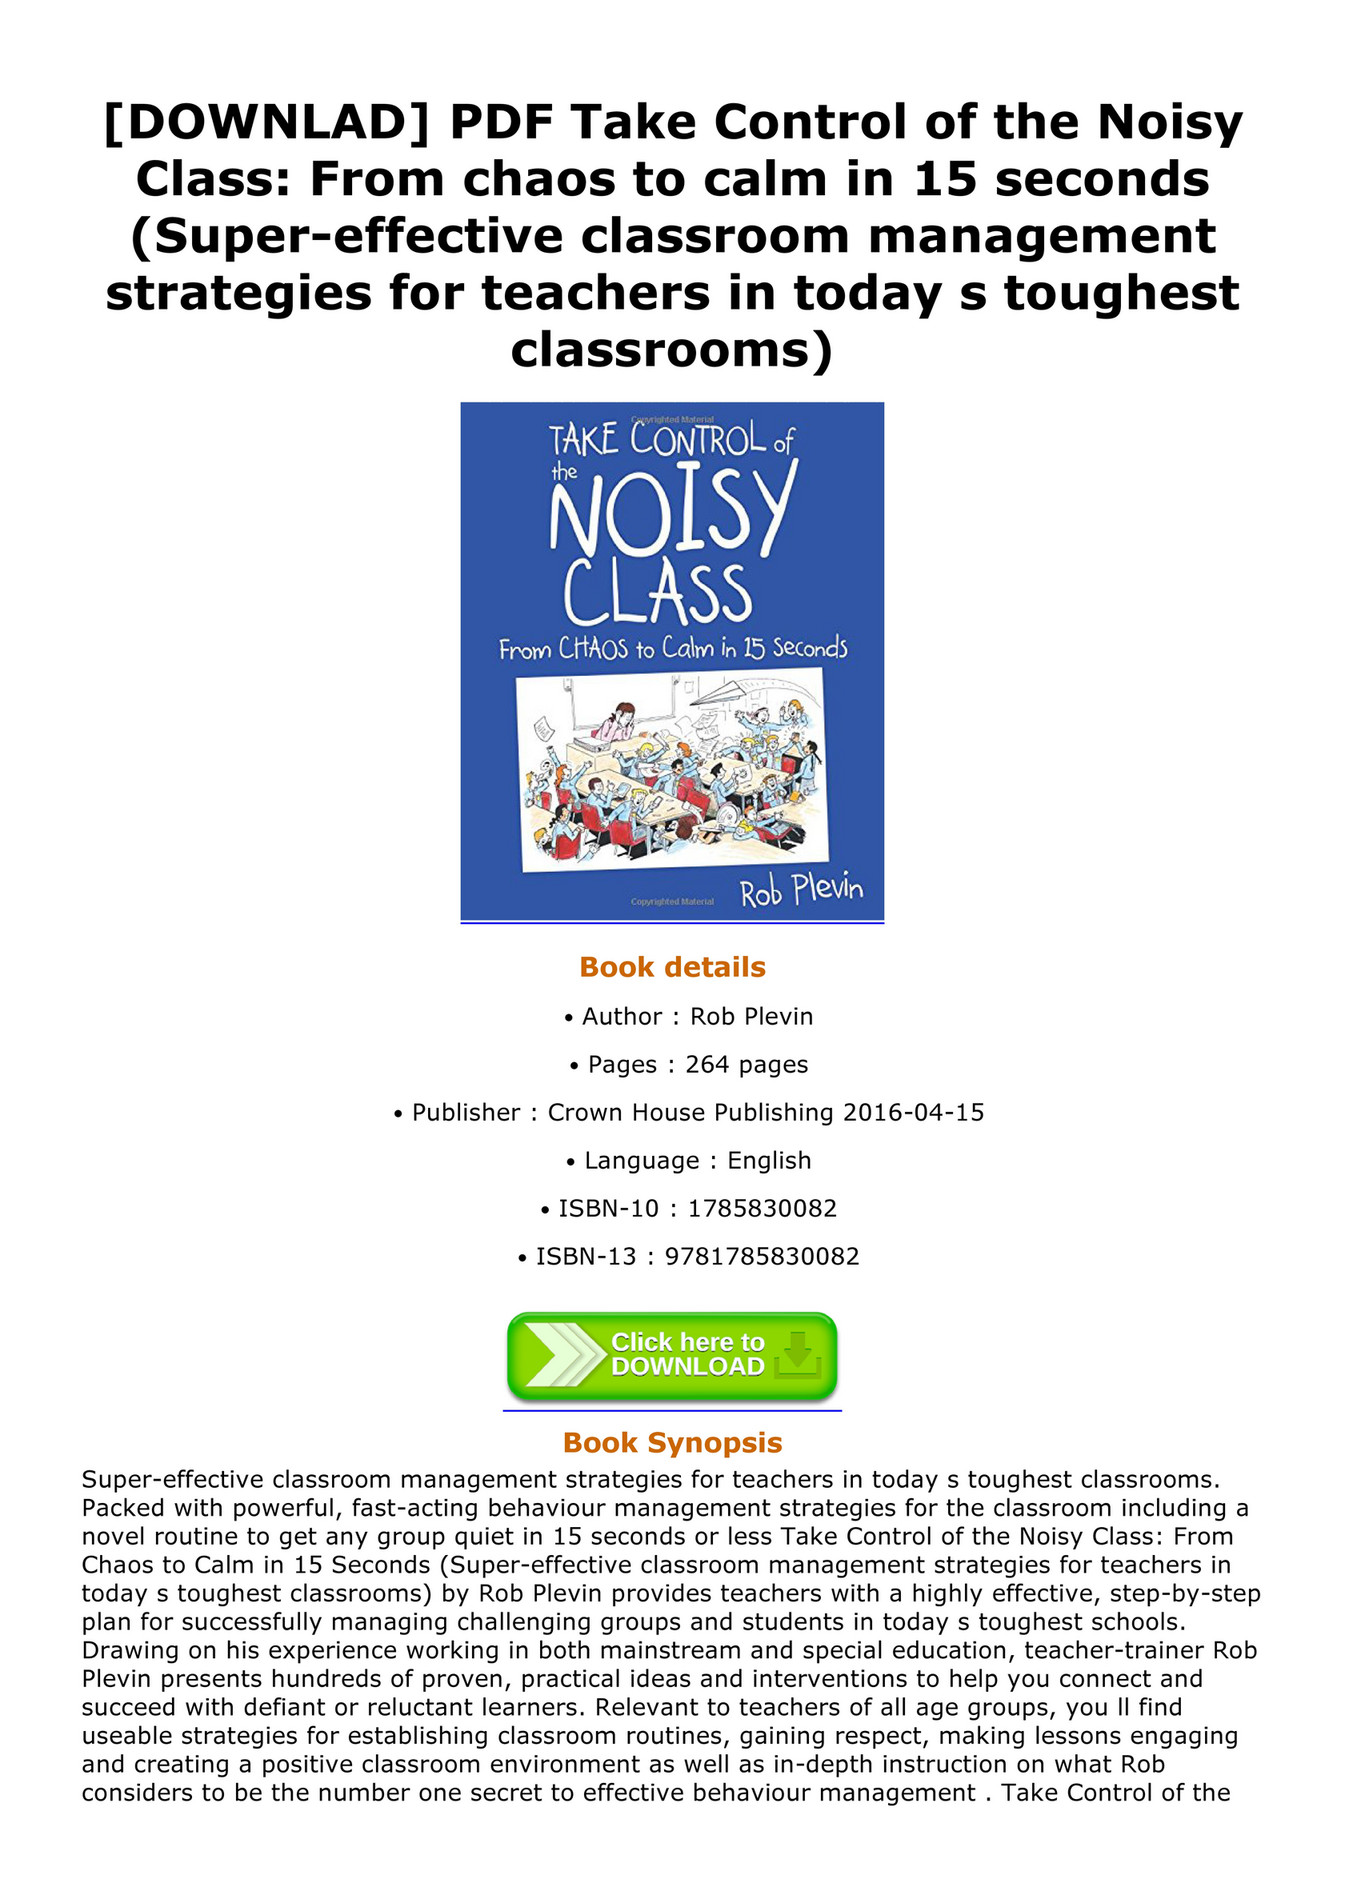 Allen - DOWNLAD PDF Take Control of the Noisy Class From chaos to